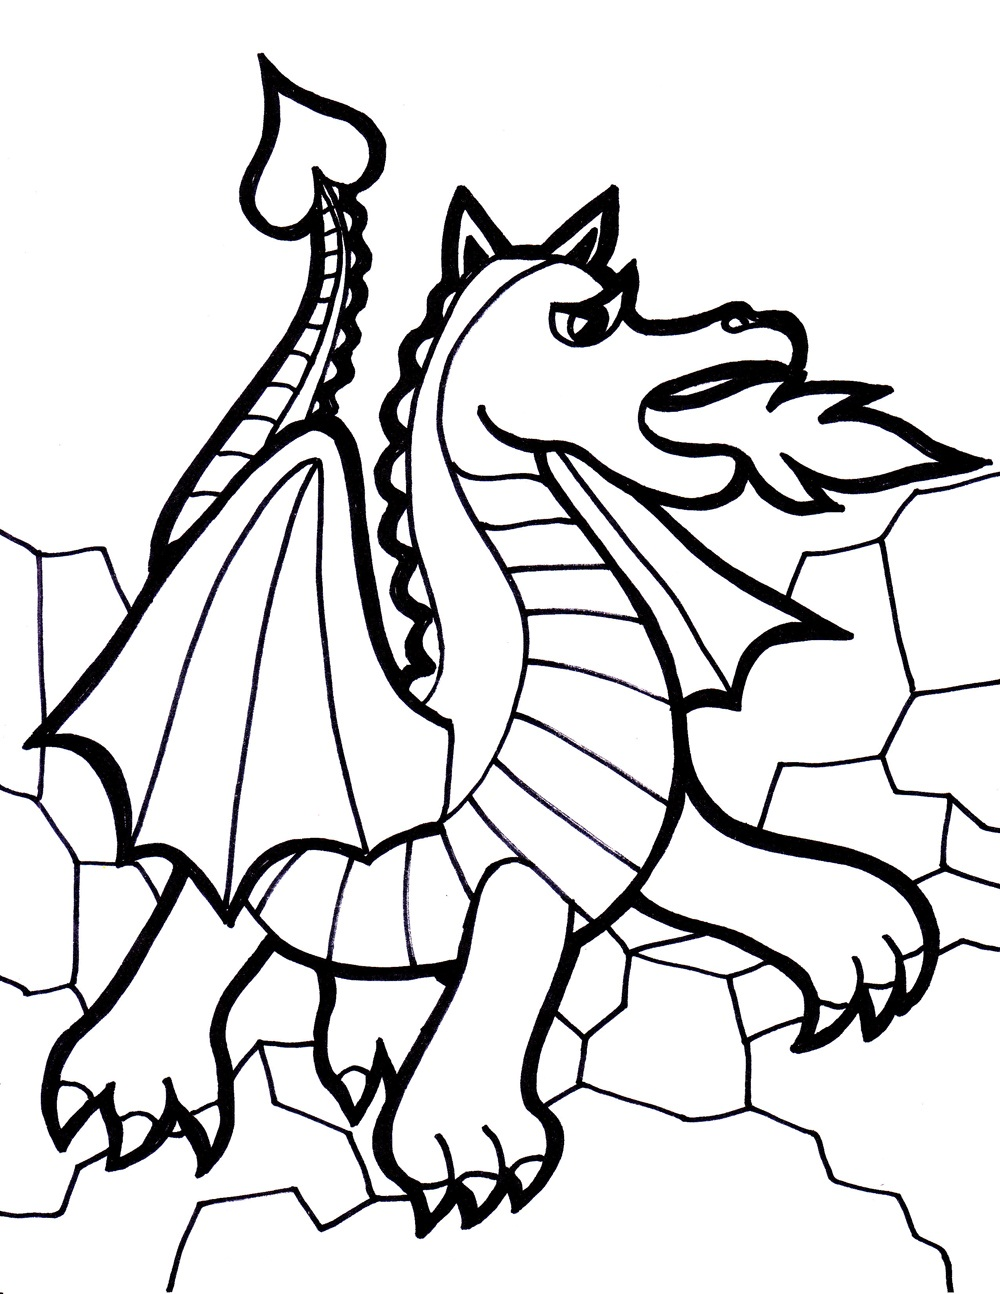 coloring pages for kdis - photo#32